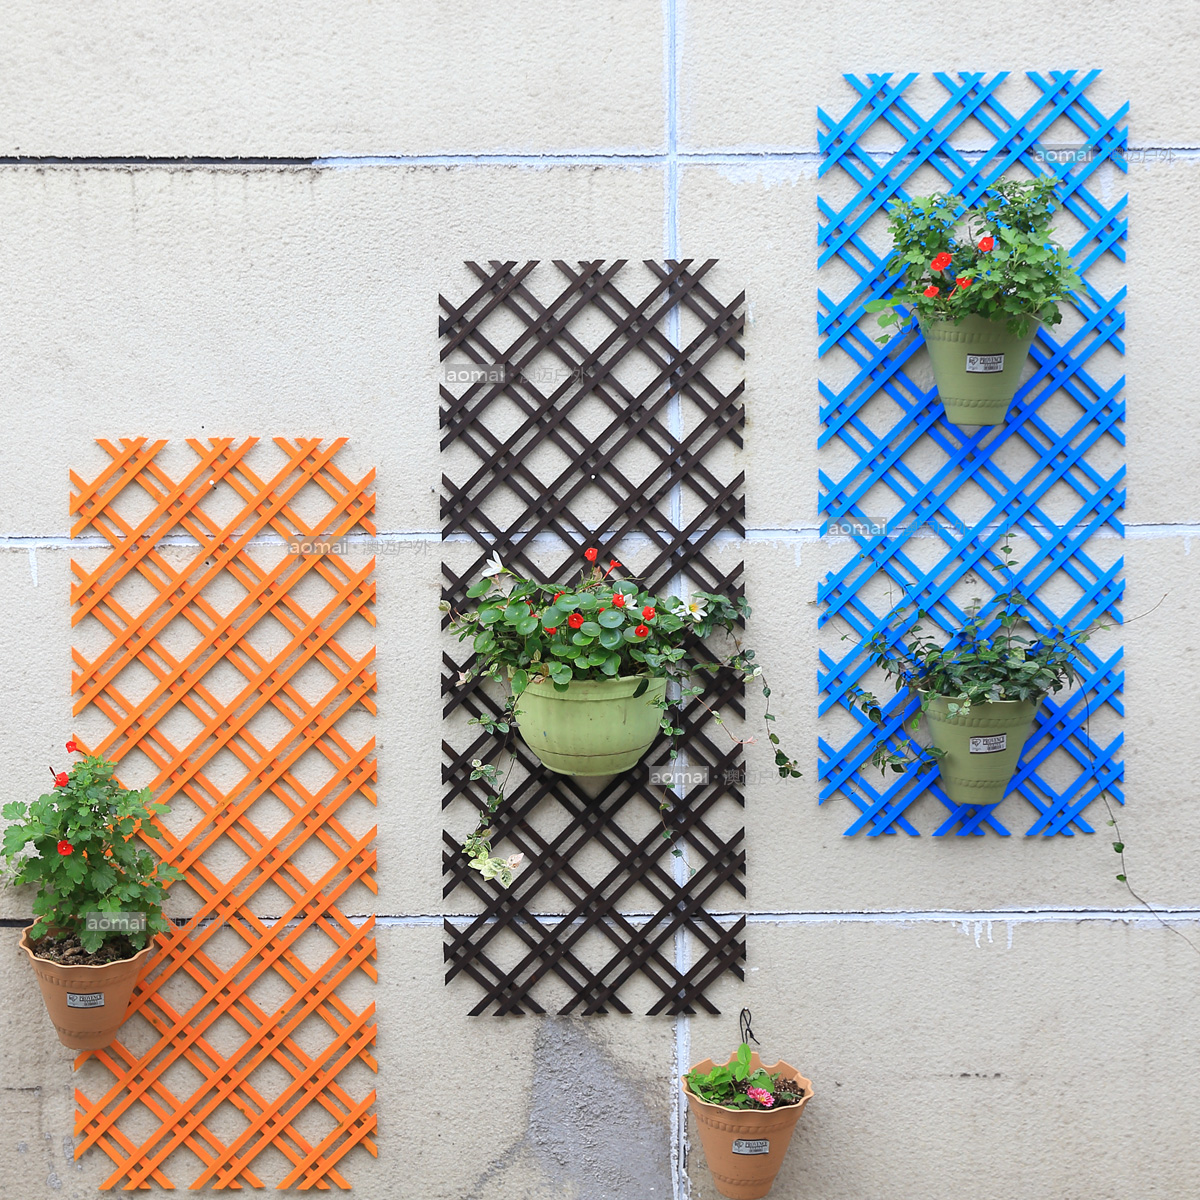 Special Gardening White Grid Mesh Parion Wall